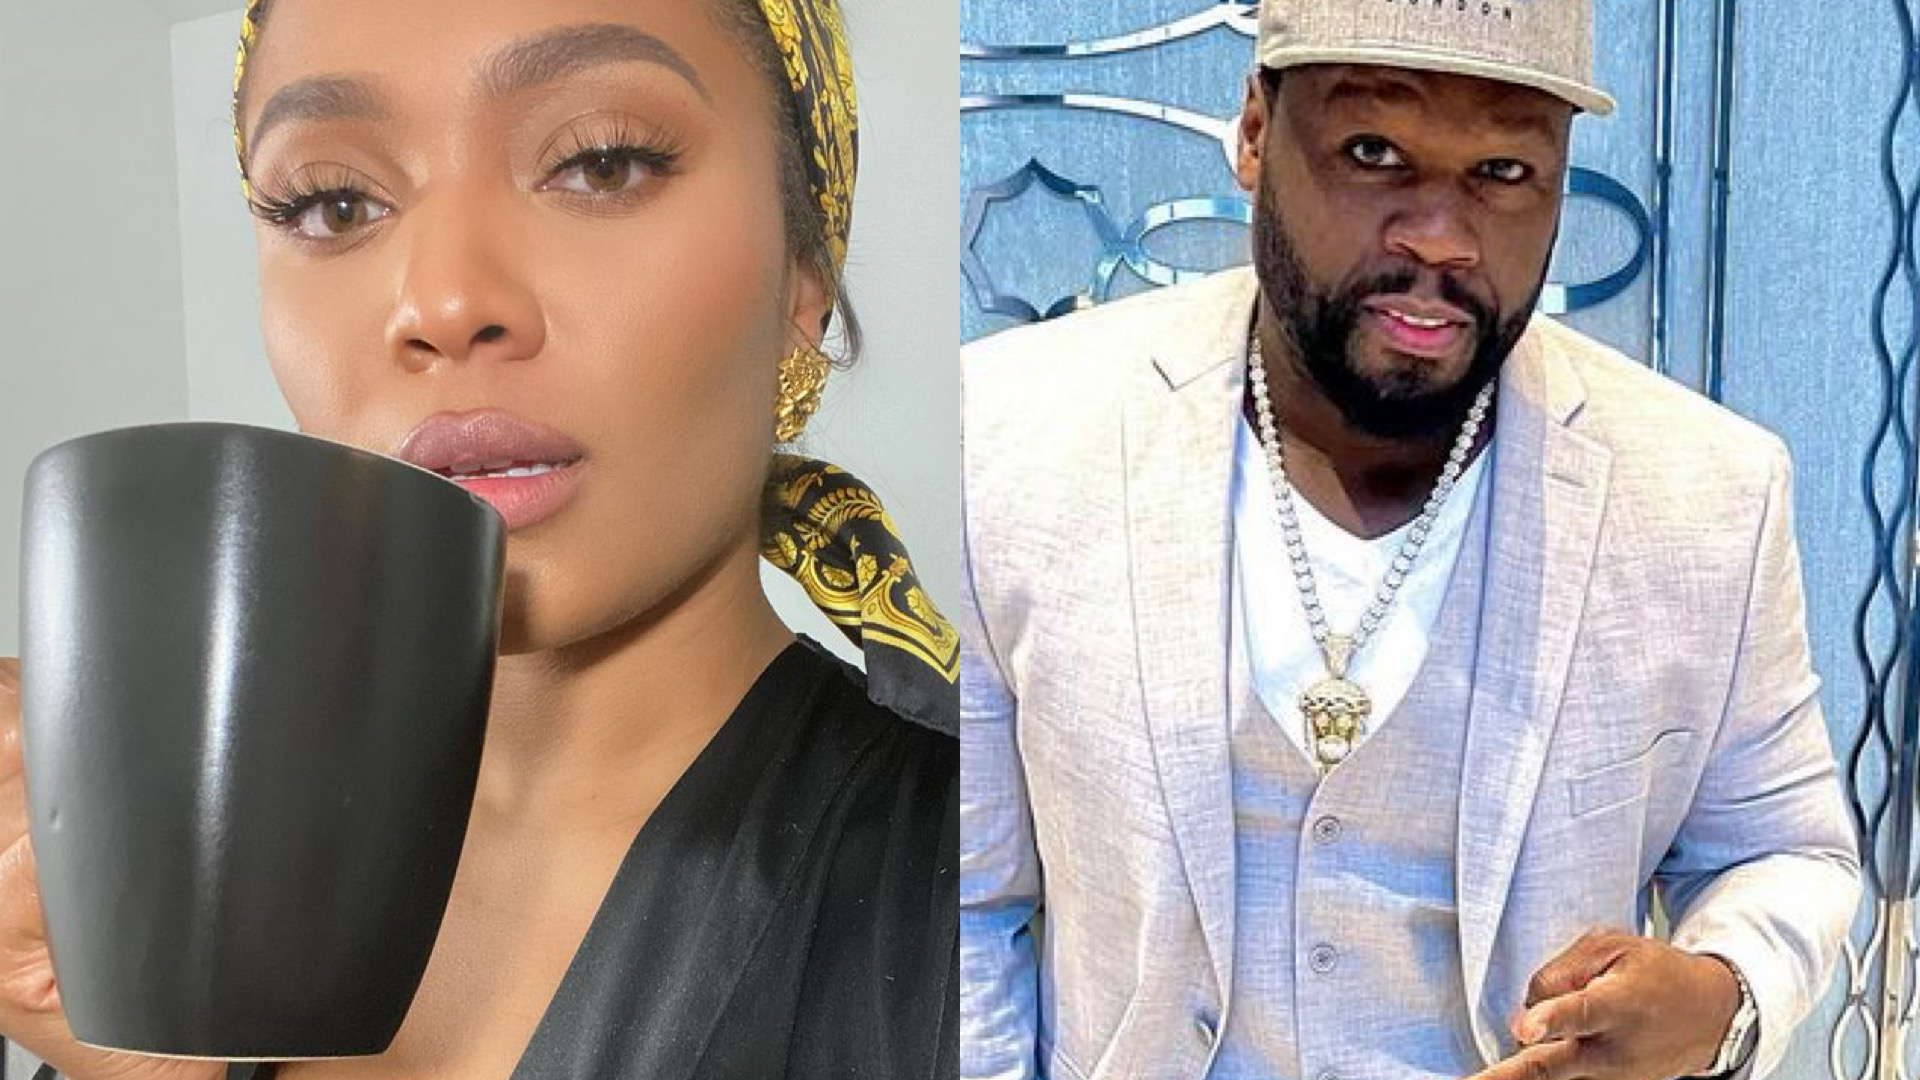 Teairra Mari Publicly Filed Their Ongoing Lawsuit - Go 4d